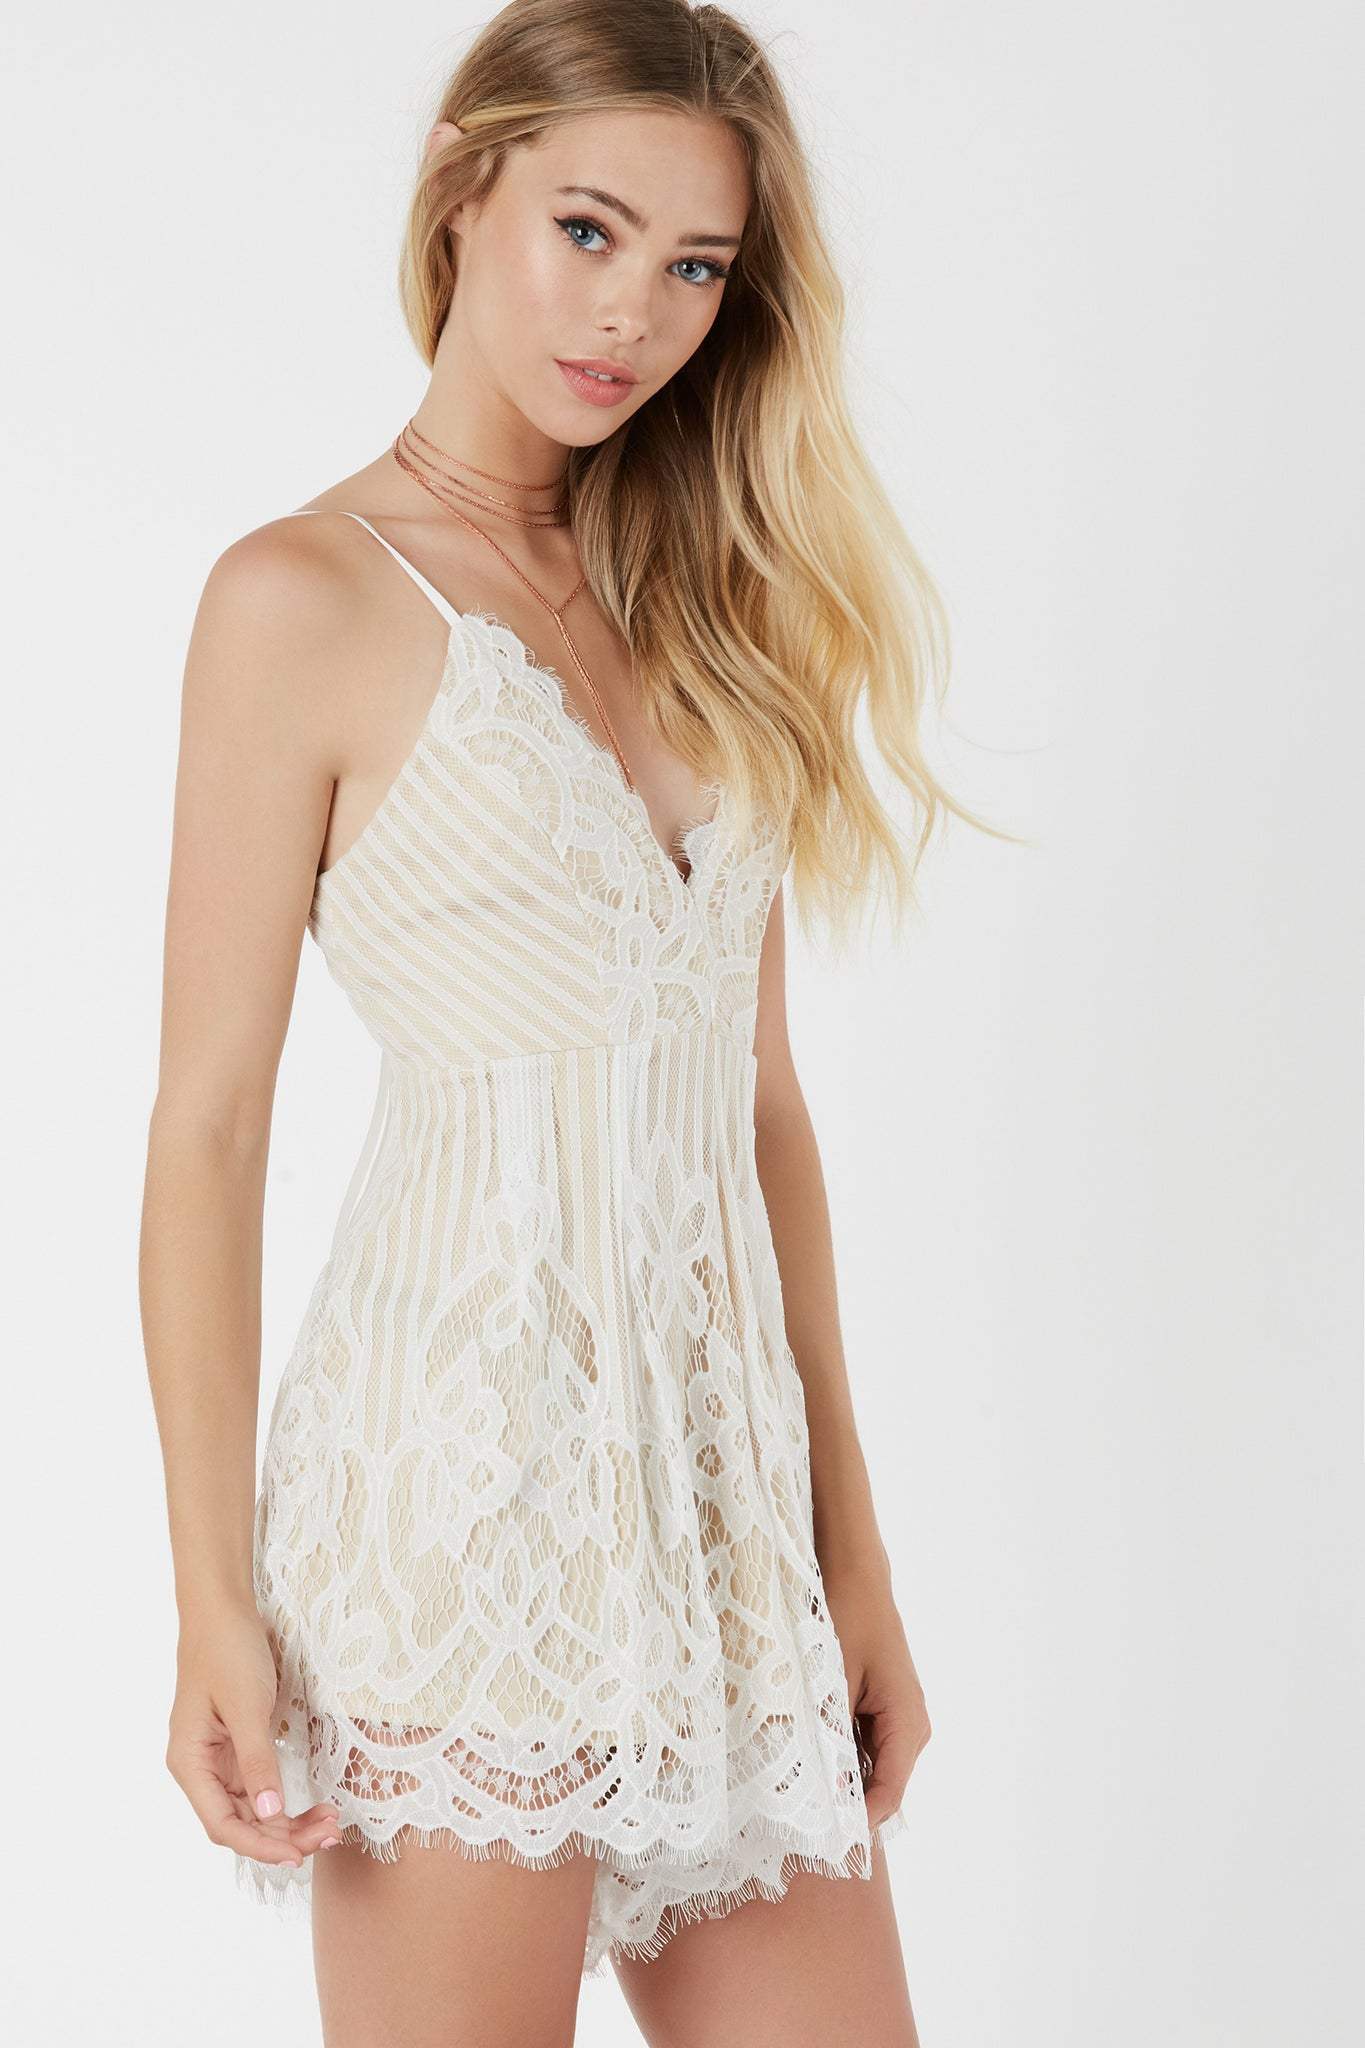 Delicate spaghetti strap romper with nude lining and lace overlay. Eyelash trim detailing with lace up design in back.